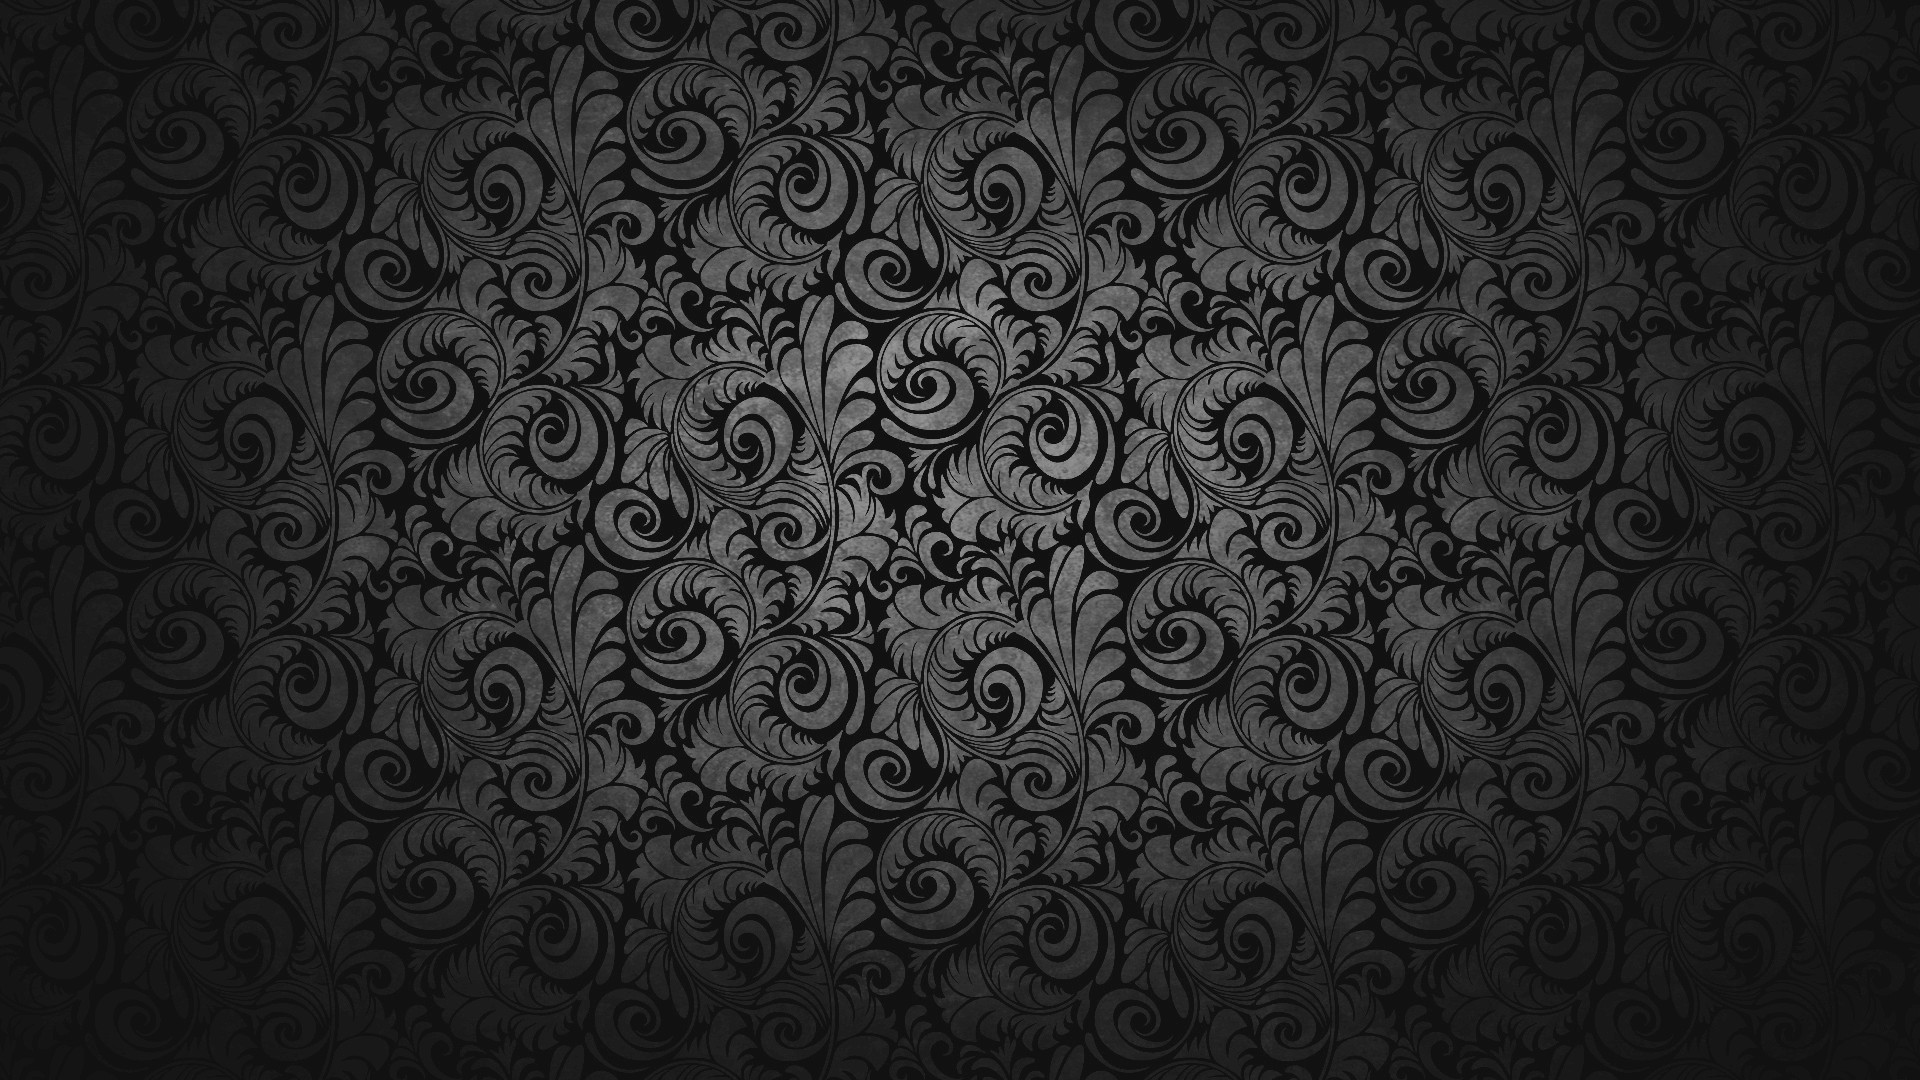 background wallpaper abstract dark 1920x1080 1920x1080